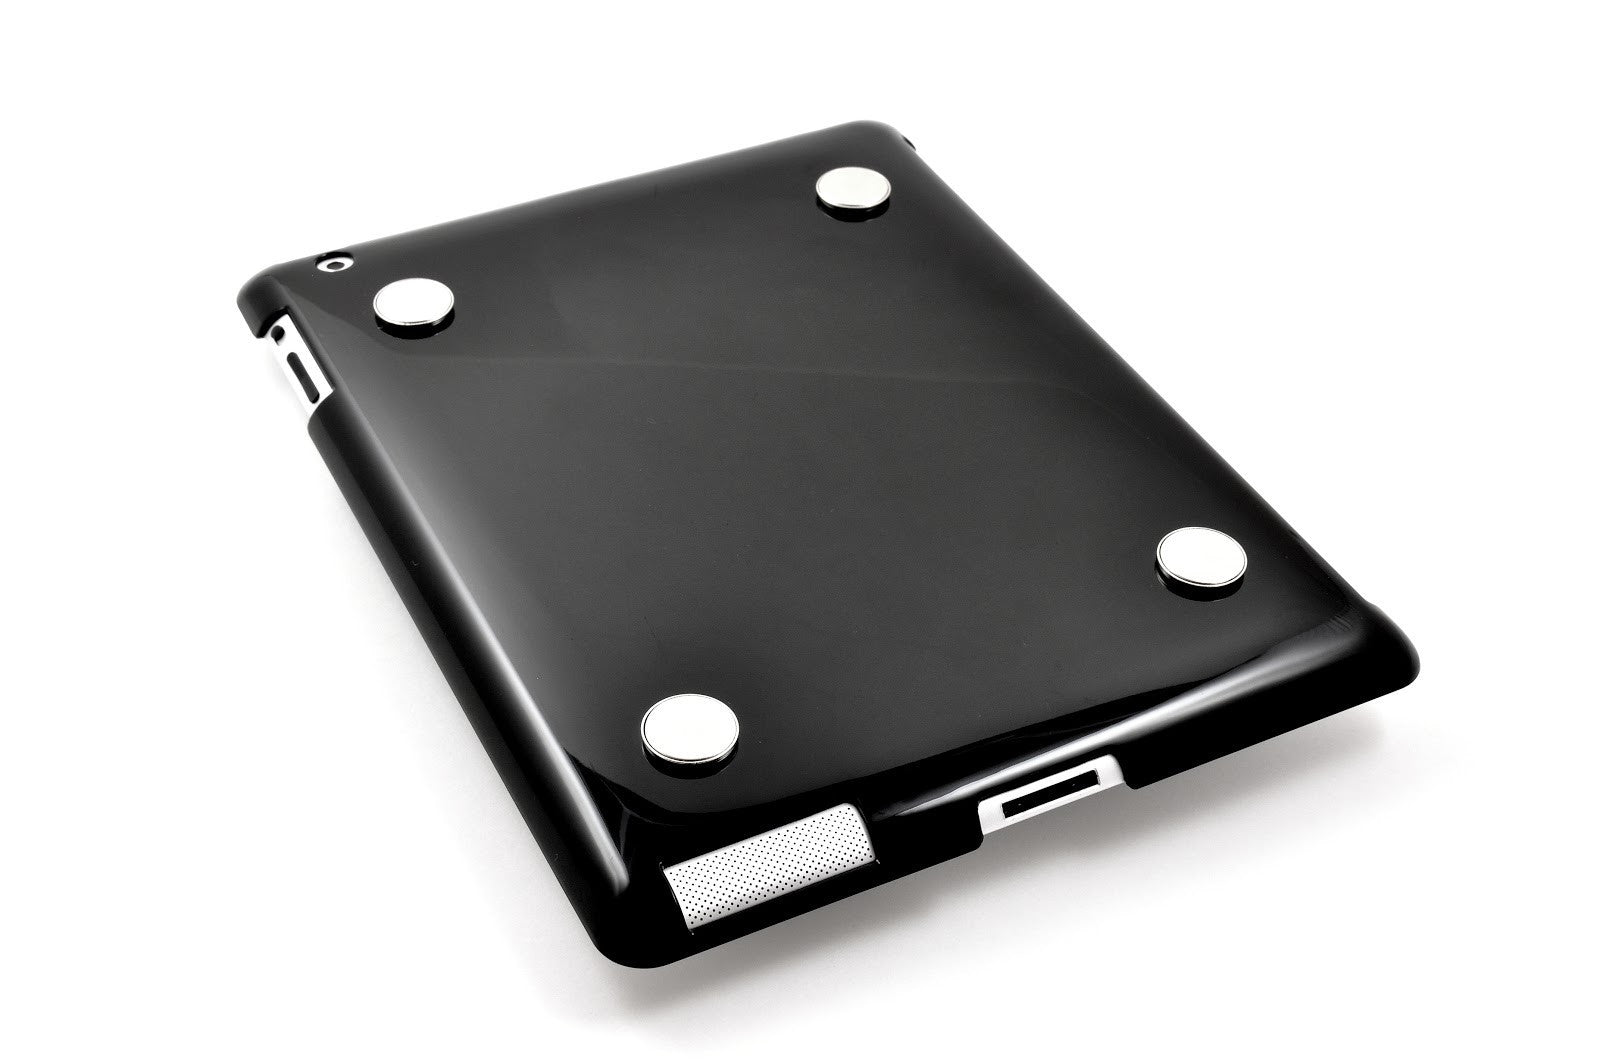 Black iPad plastic snap-on case/cover with magnets